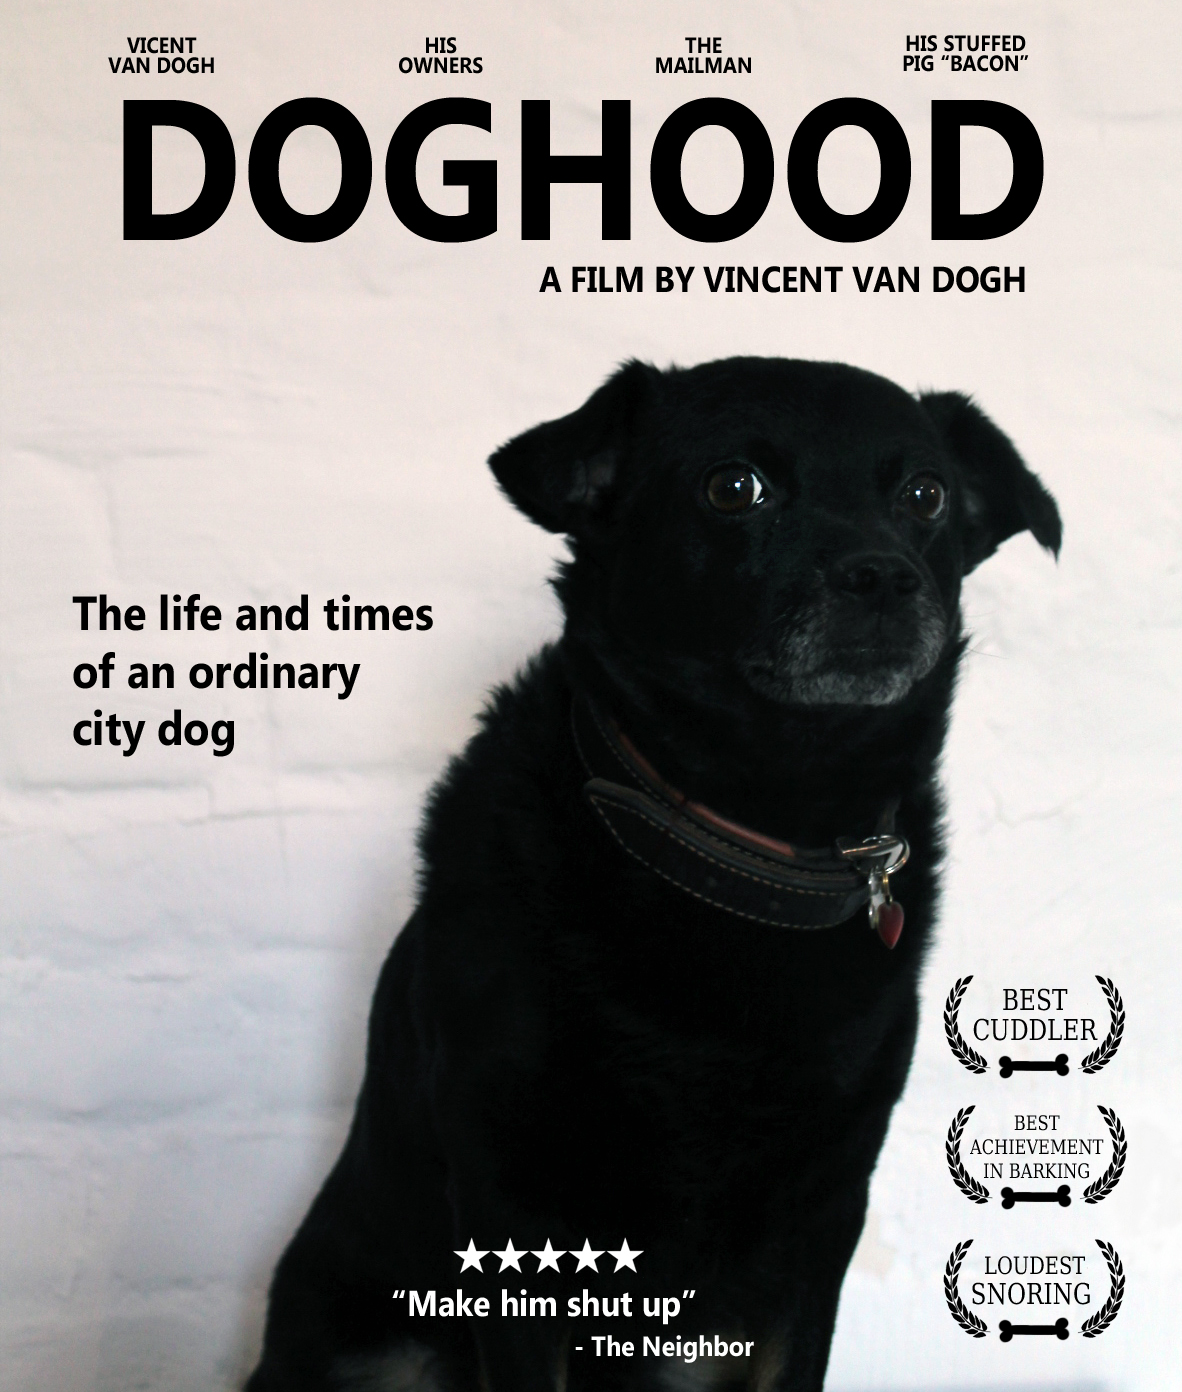 This guy loves his dog so much he made him his own movie poster.